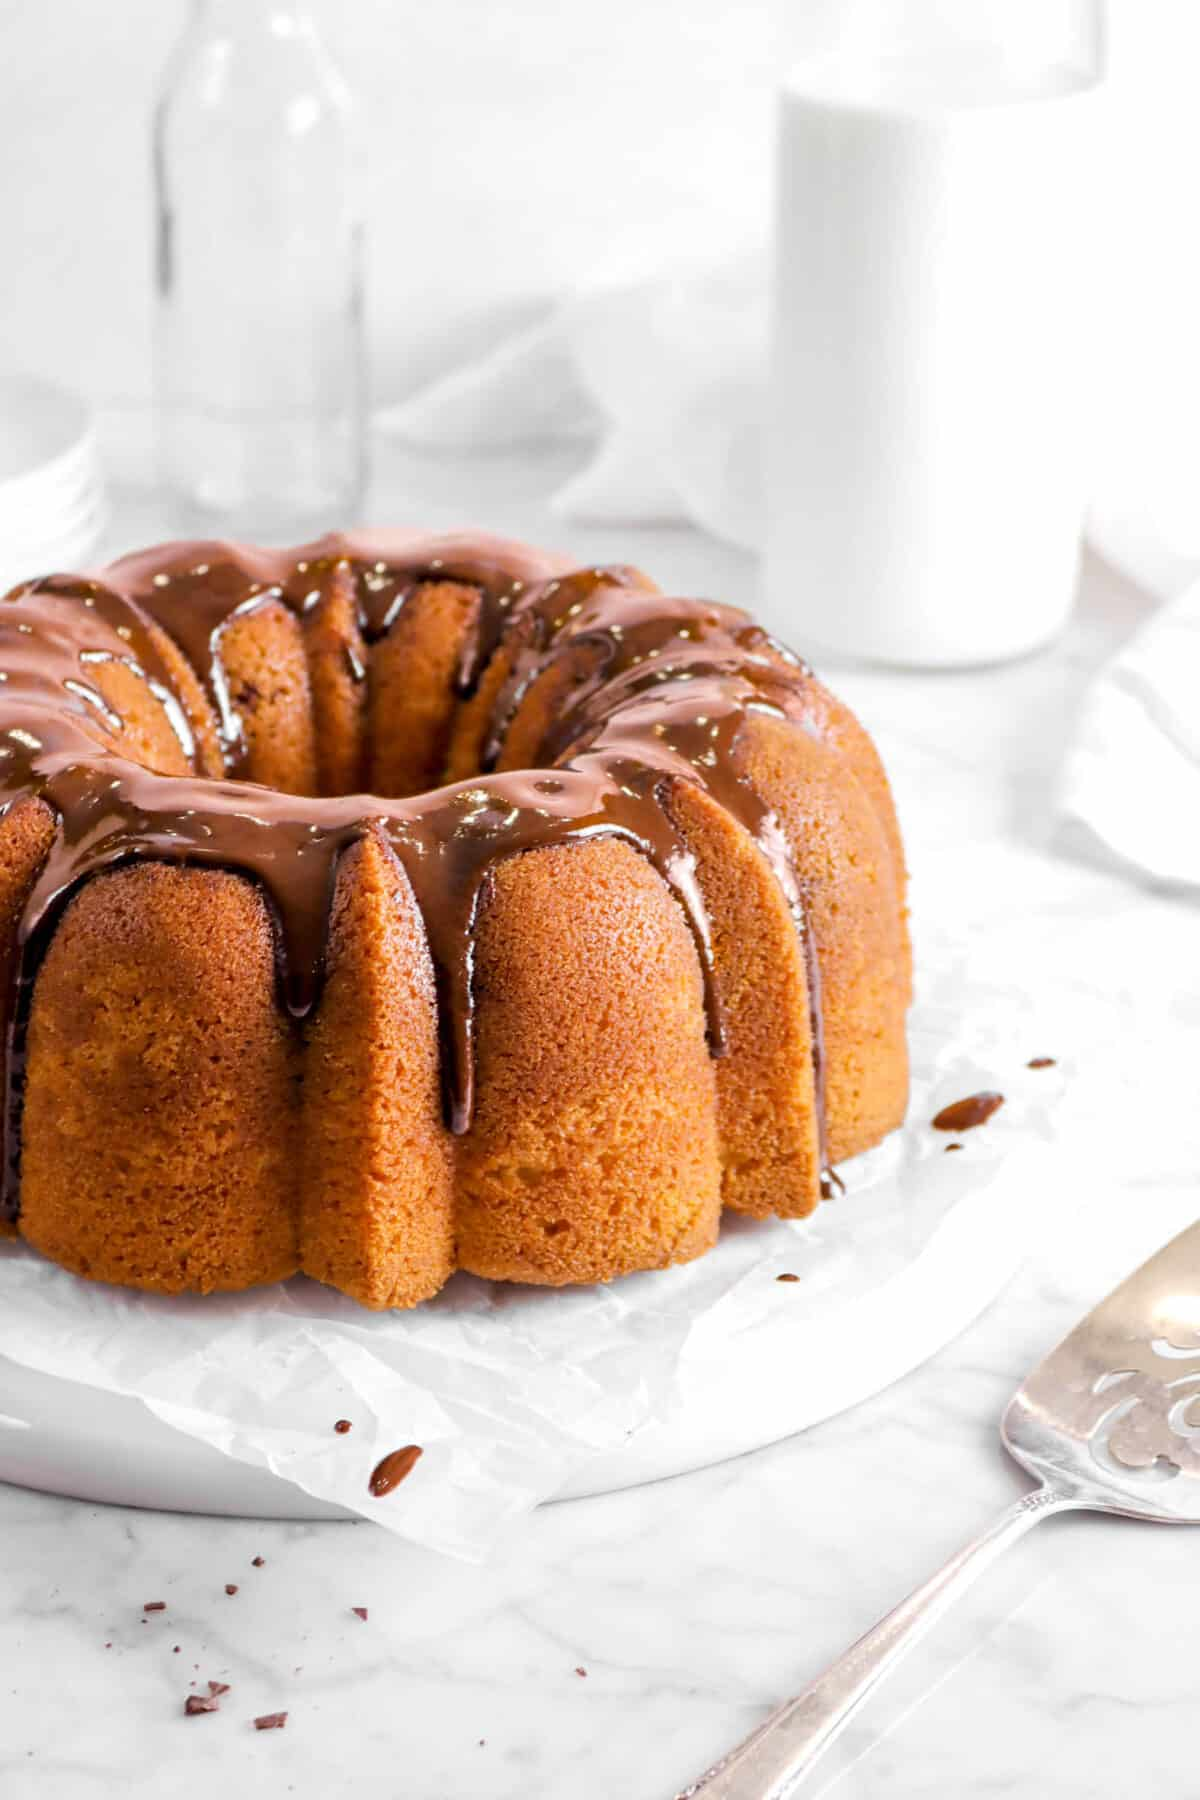 close up of bundt cake on parchment with glass of milk, napkin and cake knife